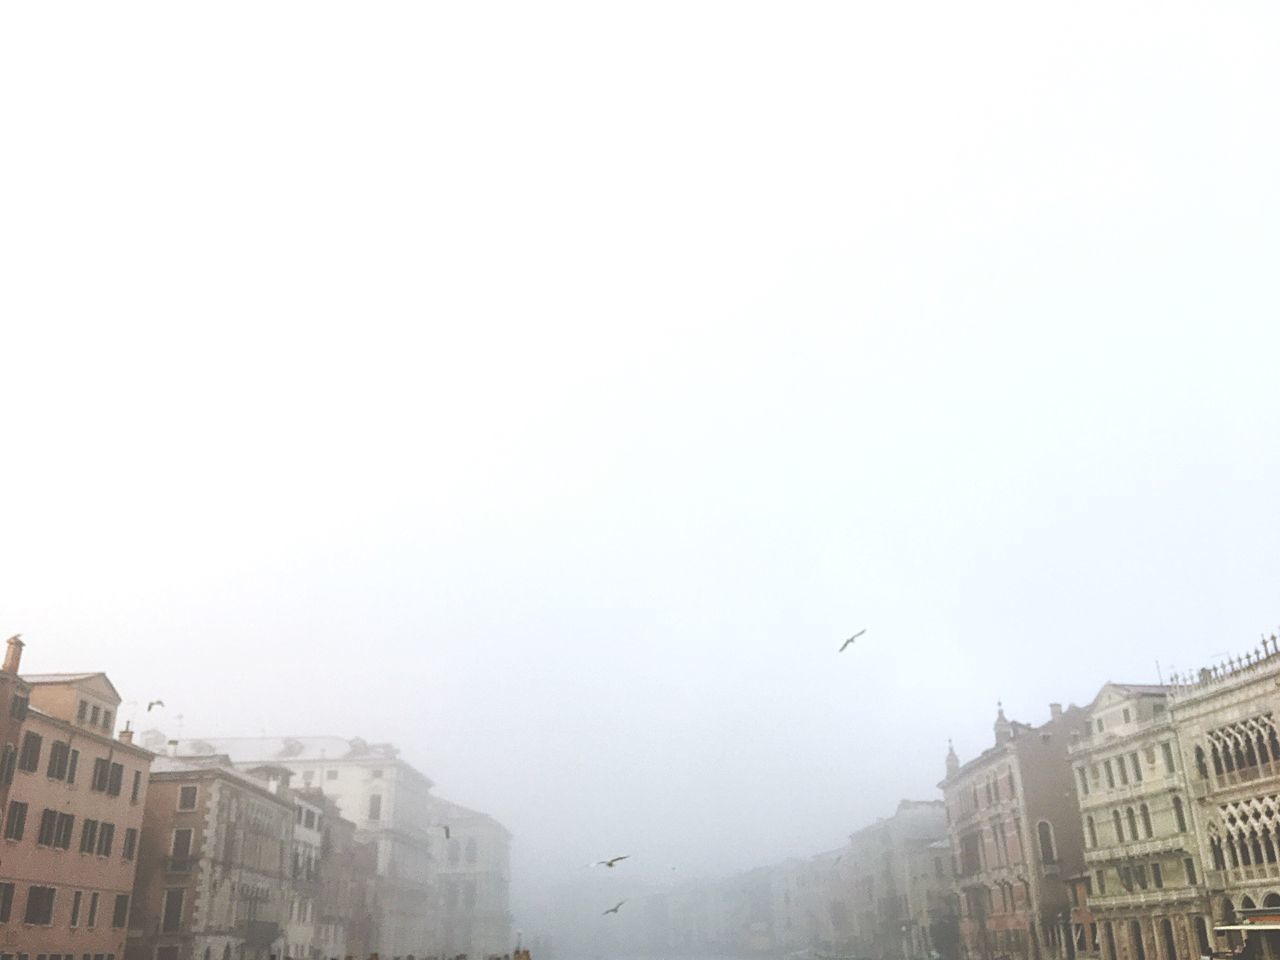 Building Exterior City Architecture Built Structure Flying Bird No People Clear Sky Animal Themes Outdoors Sky Day Animals In The Wild Venice Foggy Mystery